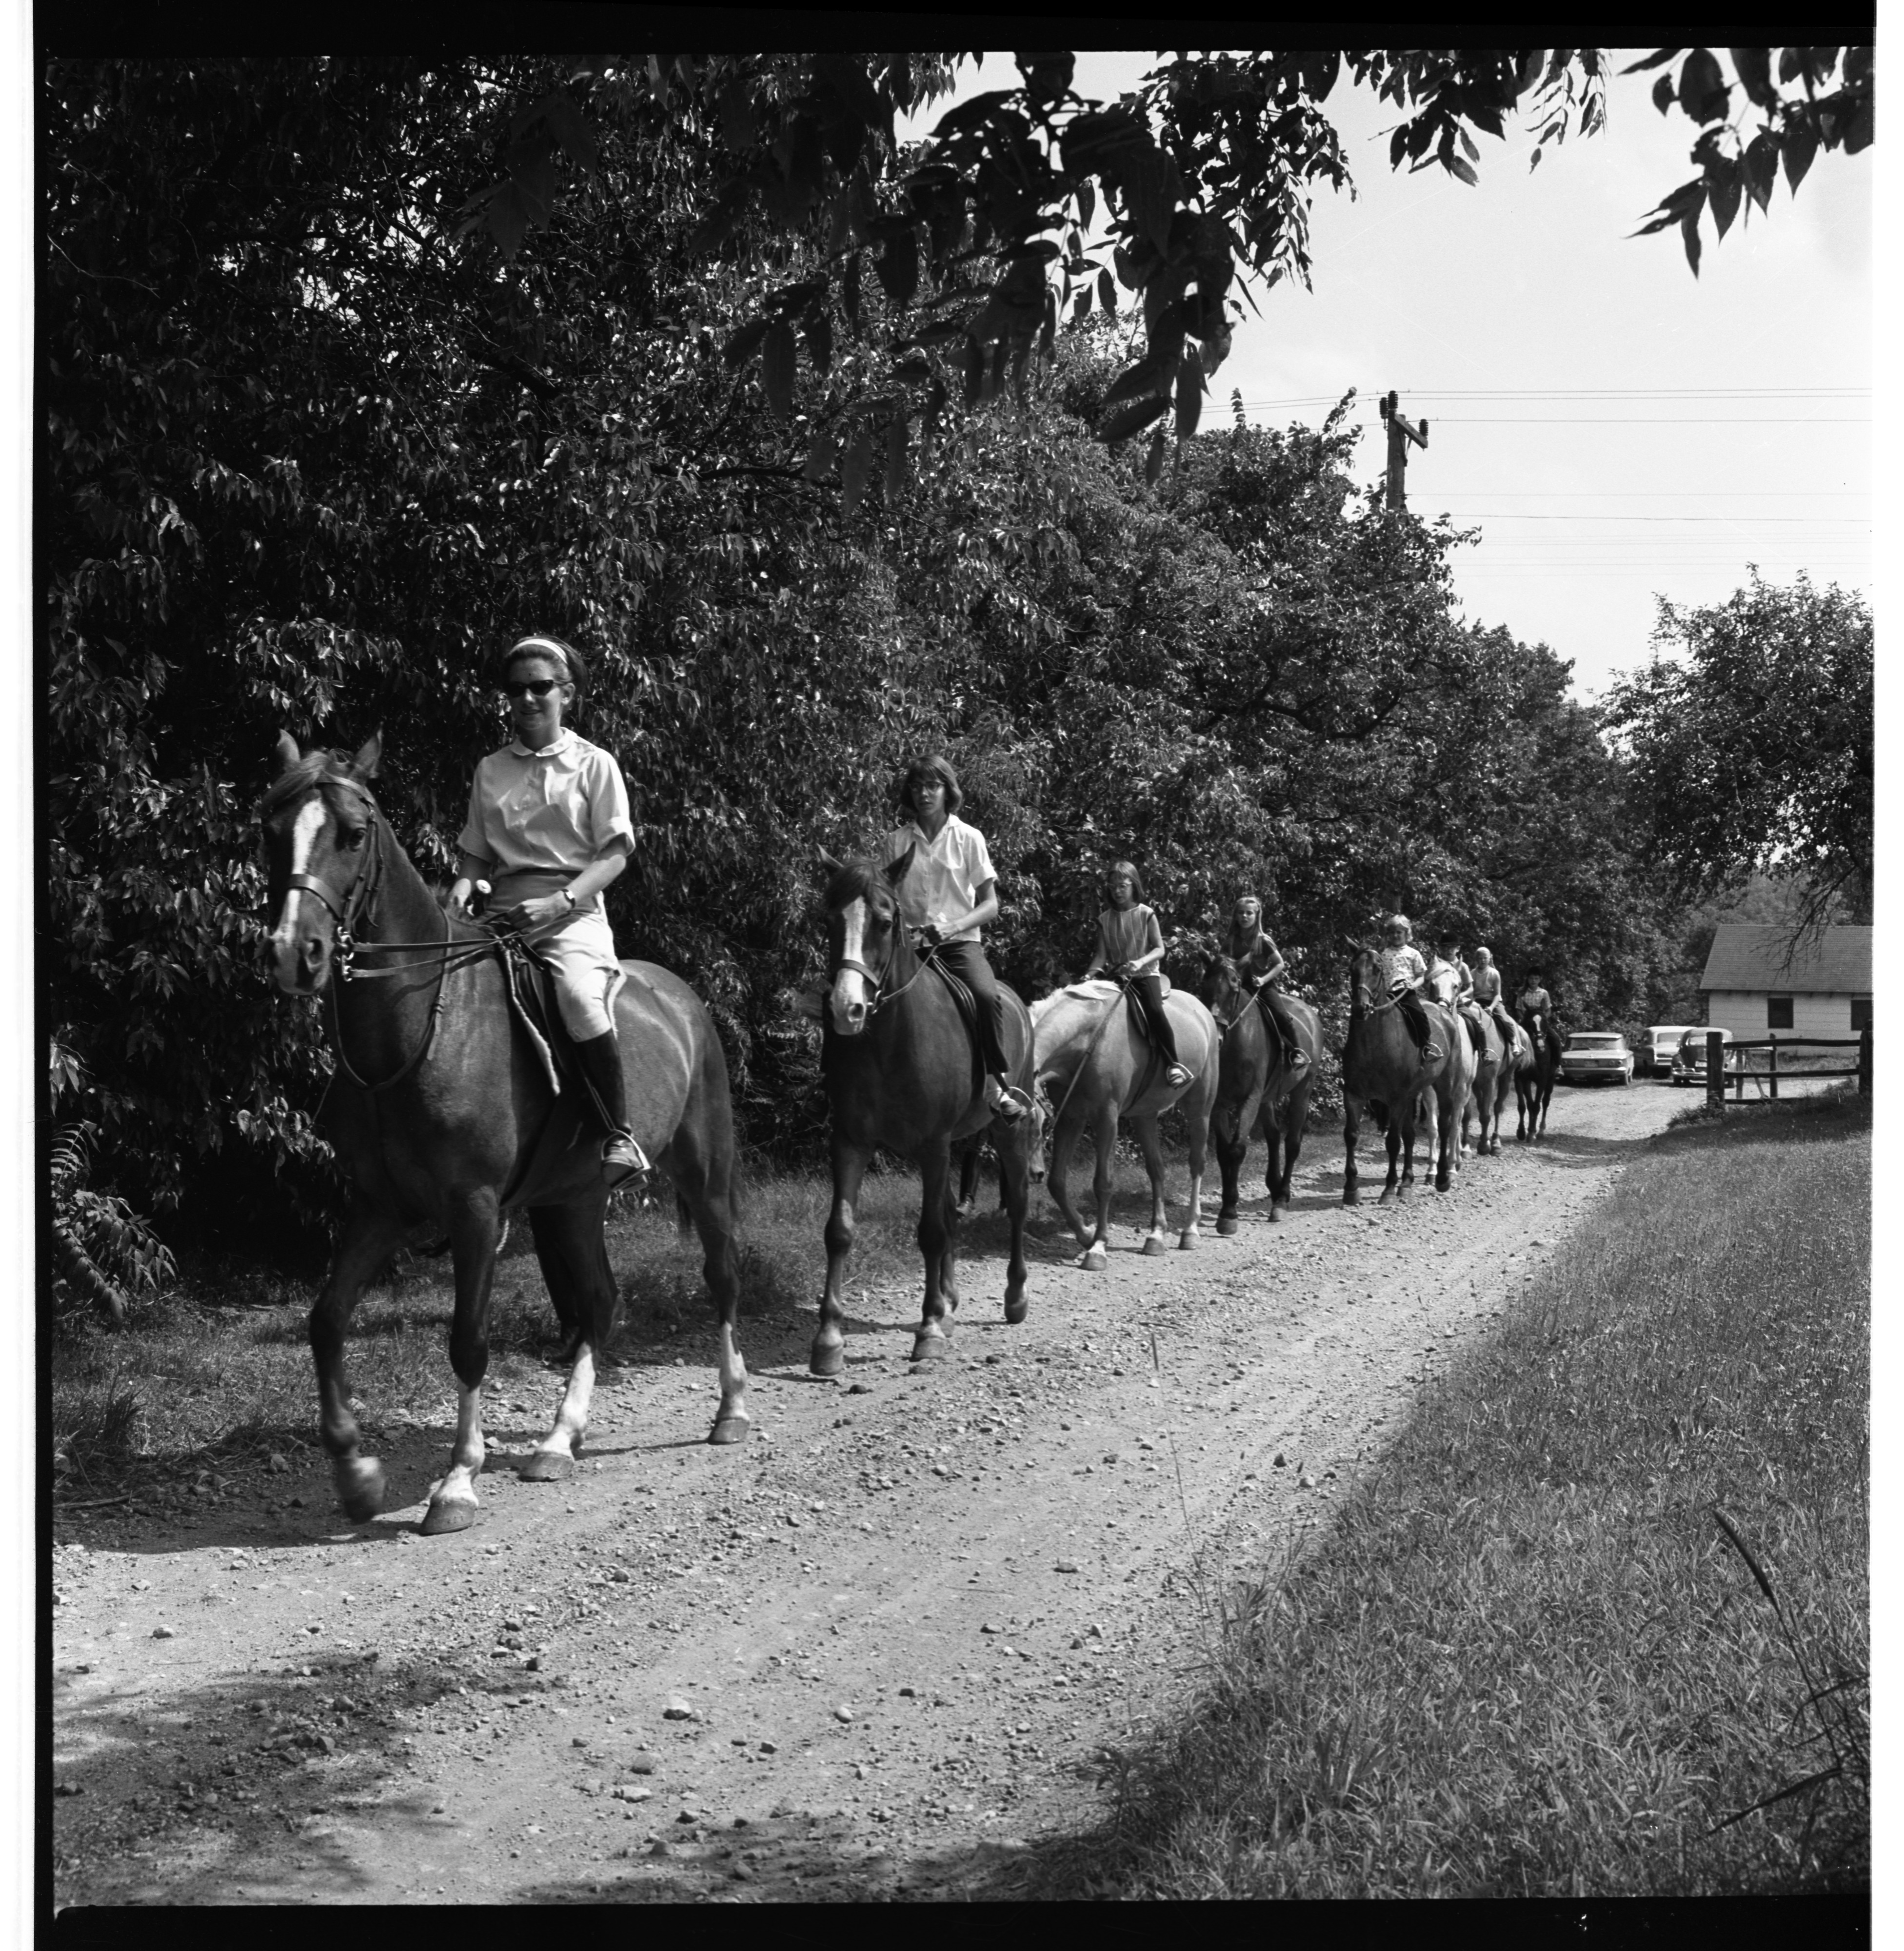 Everett's Riding School - Summer Camp, July 1964 image